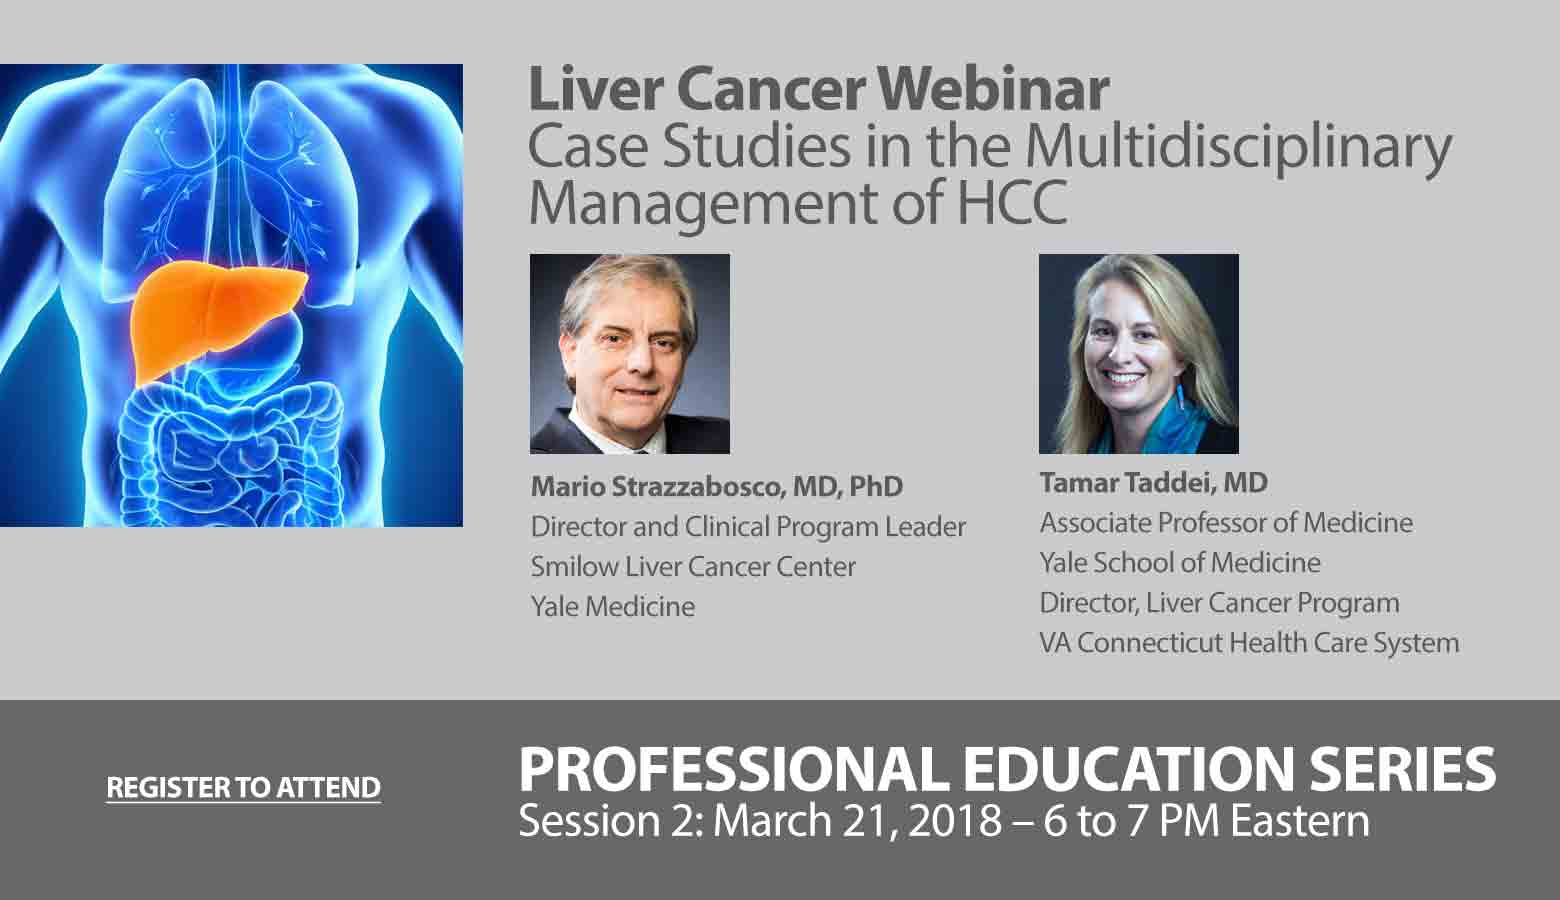 Liver Cancer Webinar – Case Studies in the Multidisciplinary Management of HCC